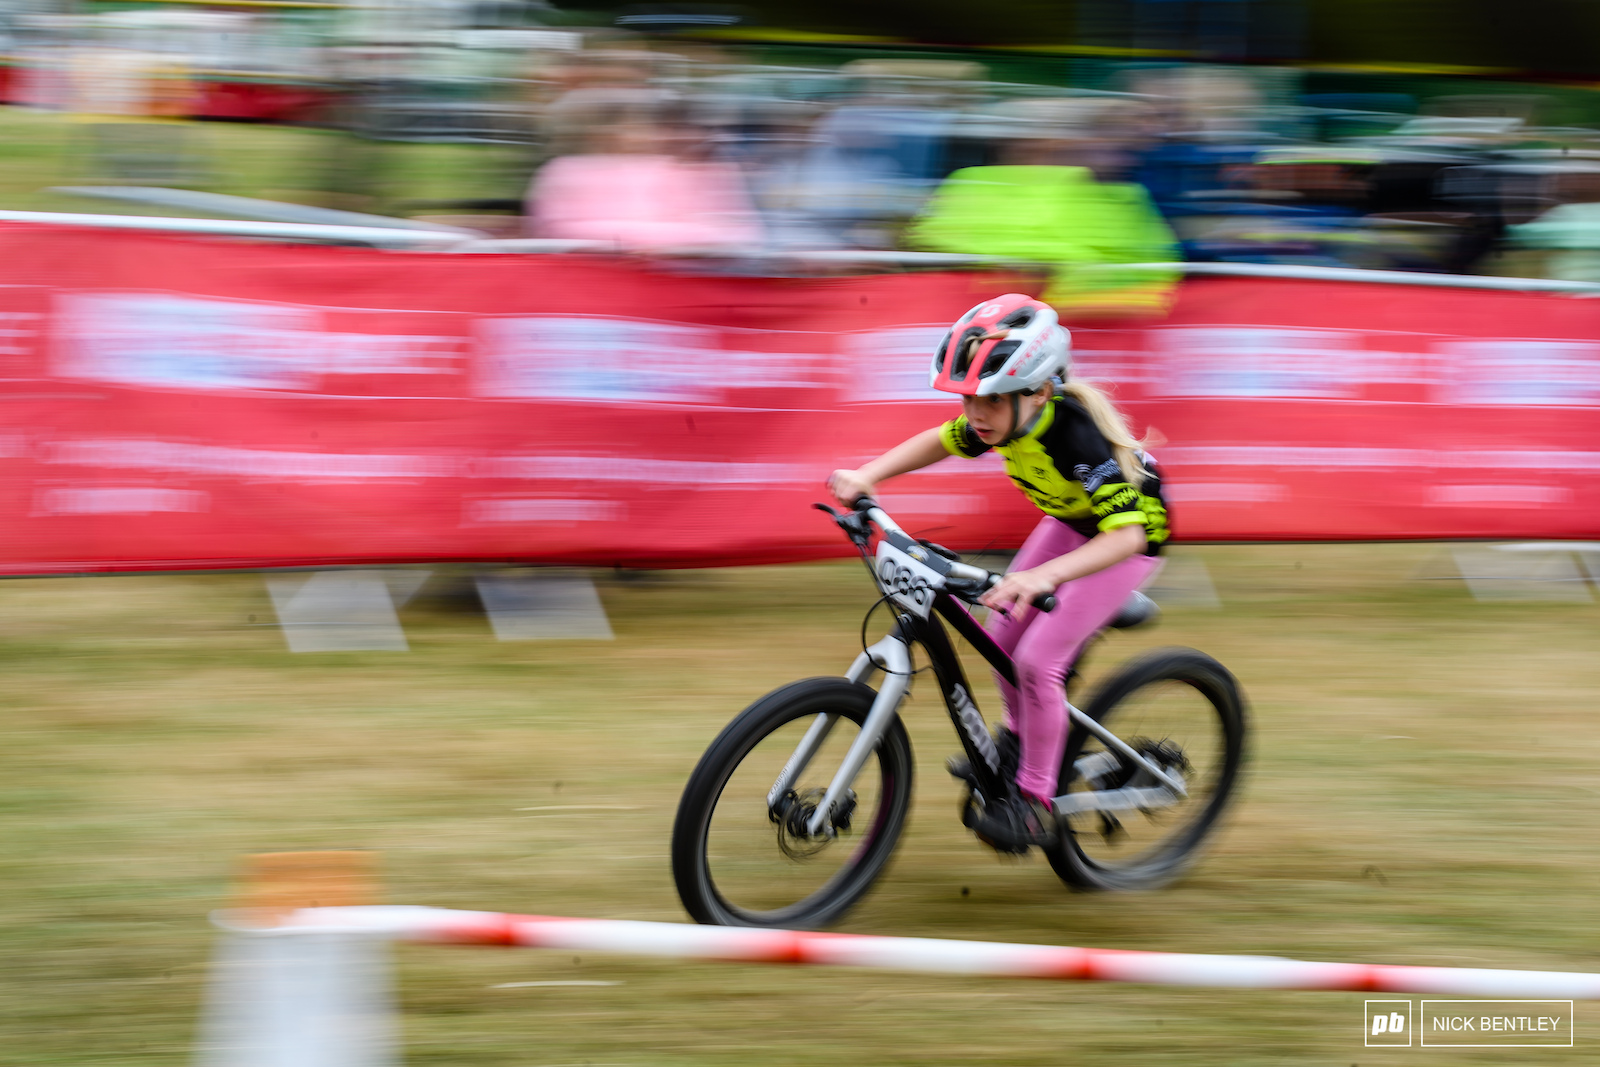 Good to see so many girls out racing